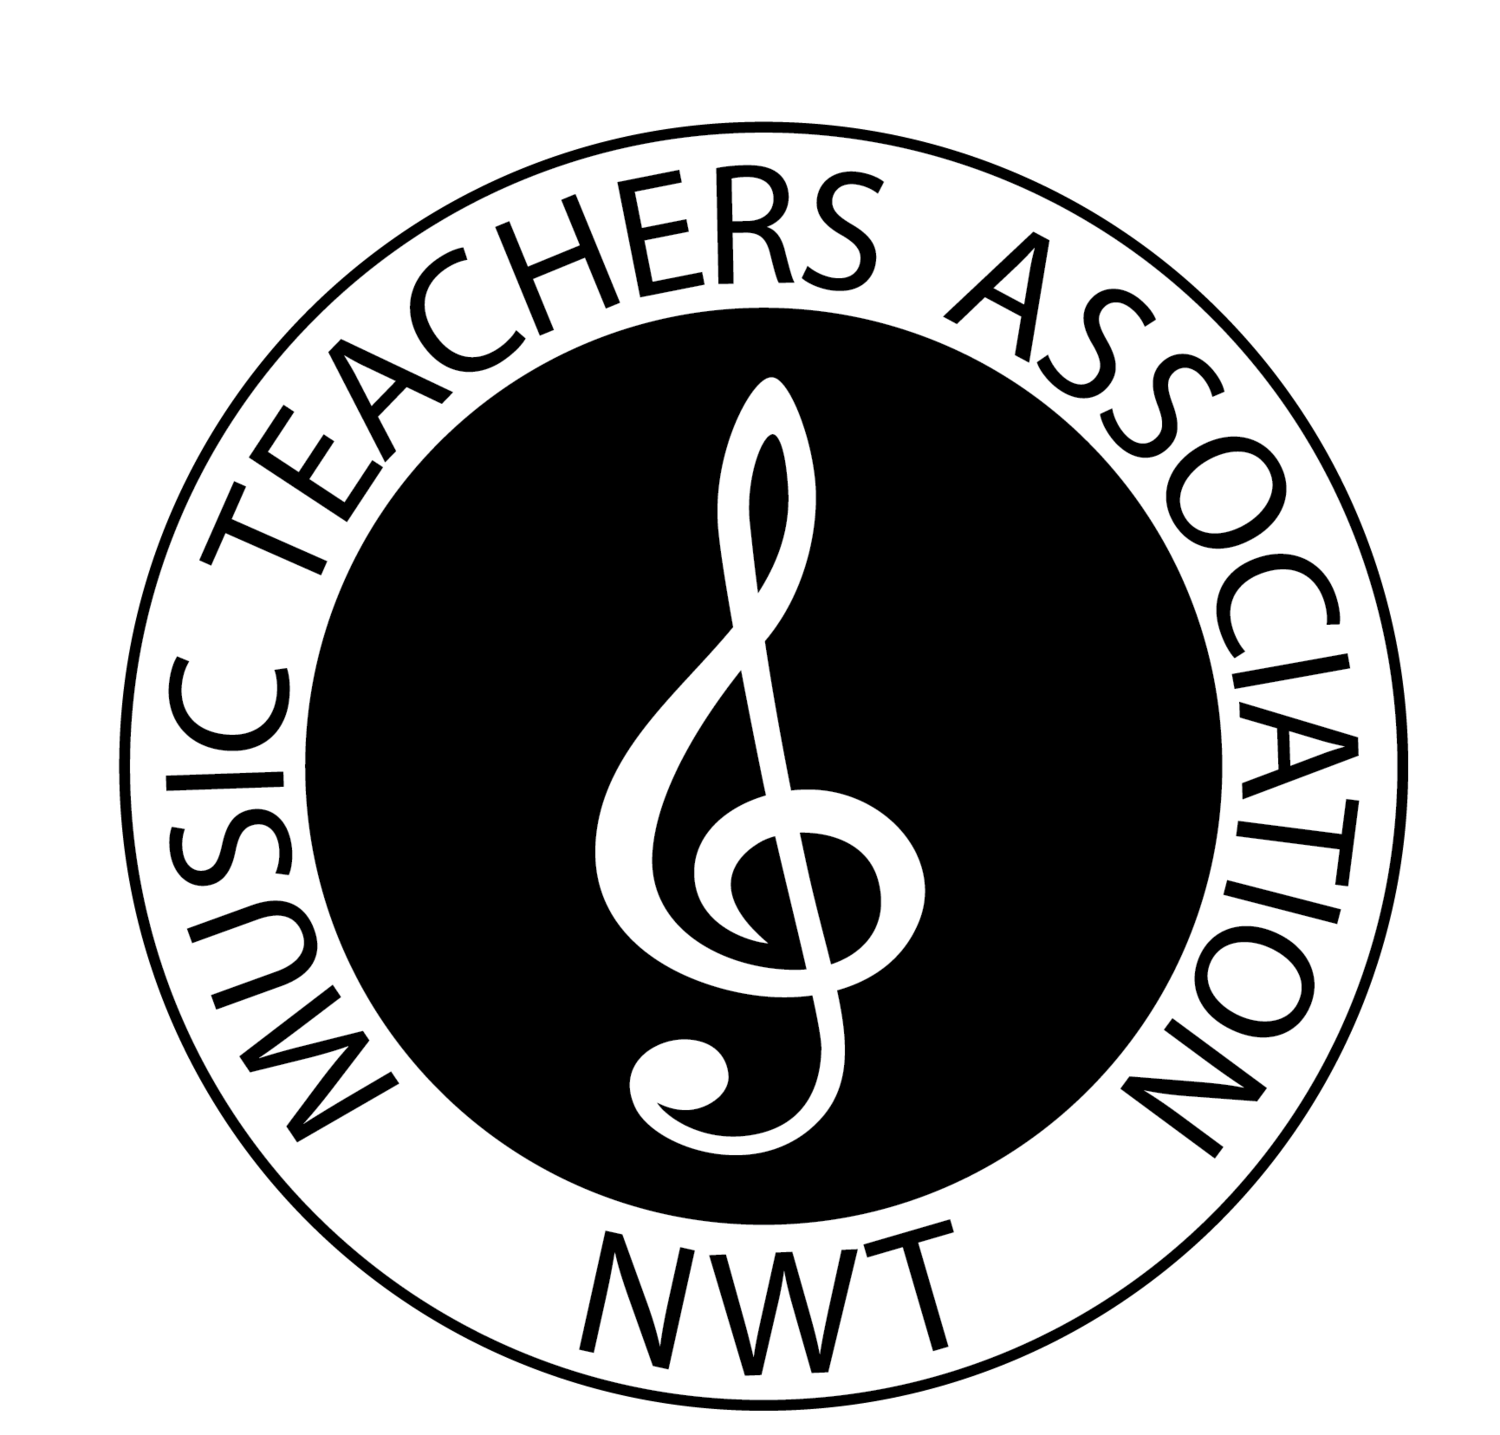 MUSIC TEACHERS ASSOCIATION of the NWT